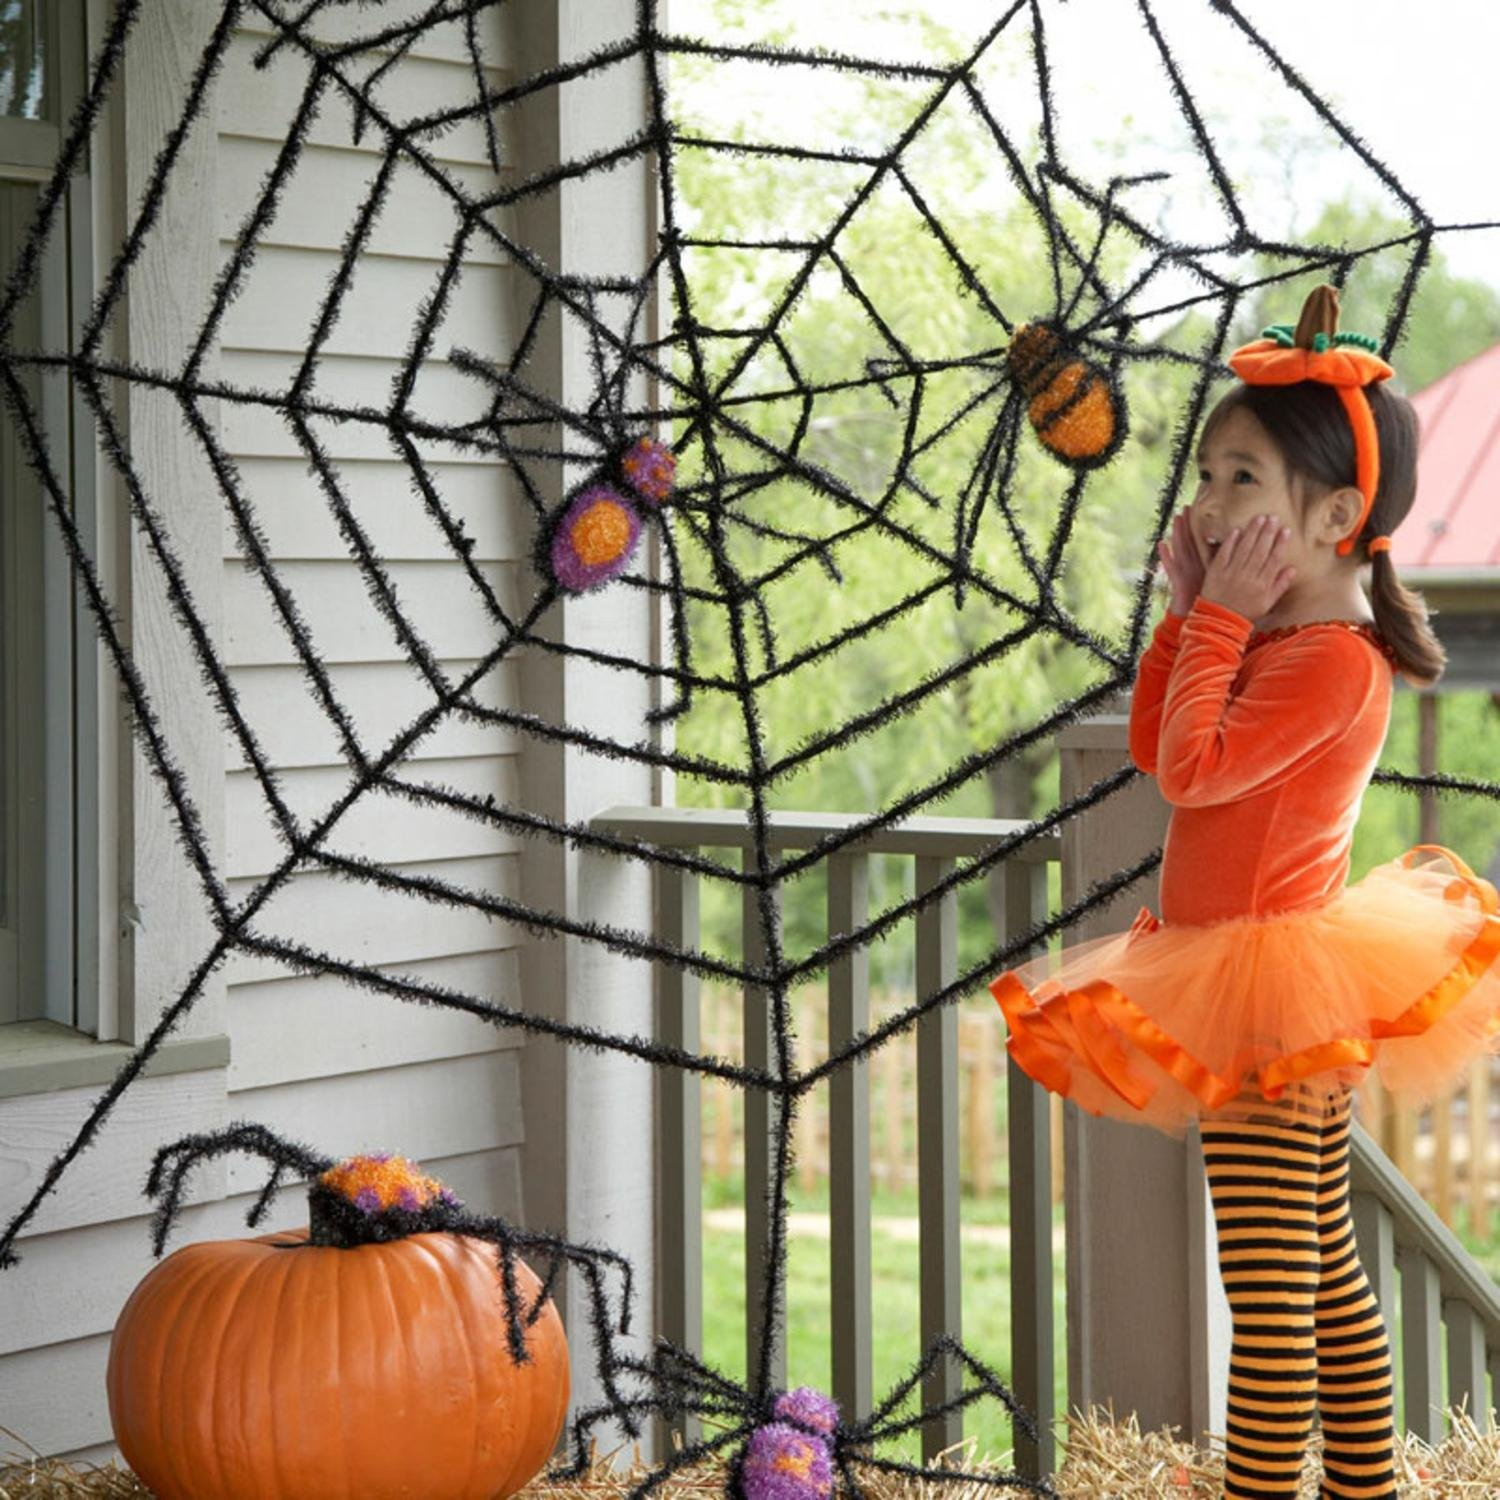 amazoncom giant spider web and giant spiders halloween decoration patio lawn garden - Halloween Spider